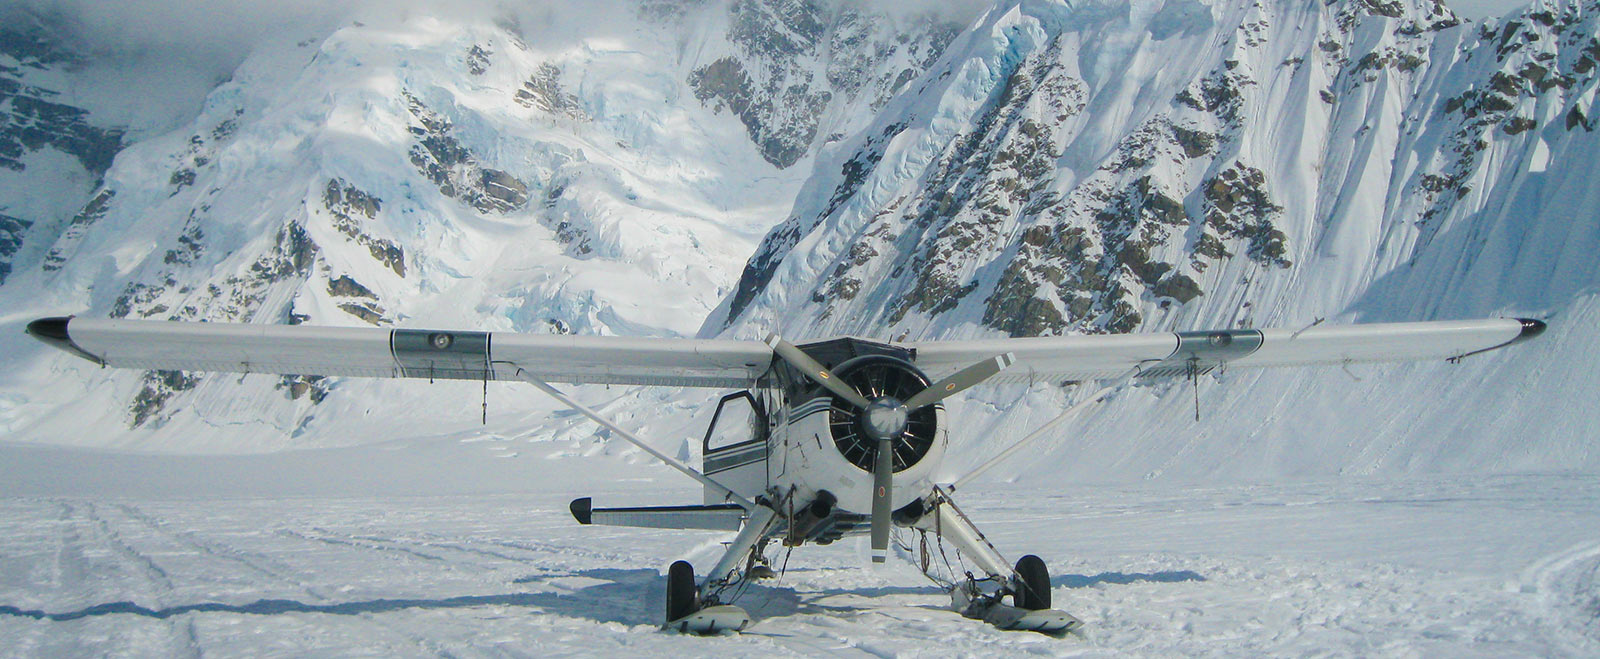 Denali National Park Air Taxi